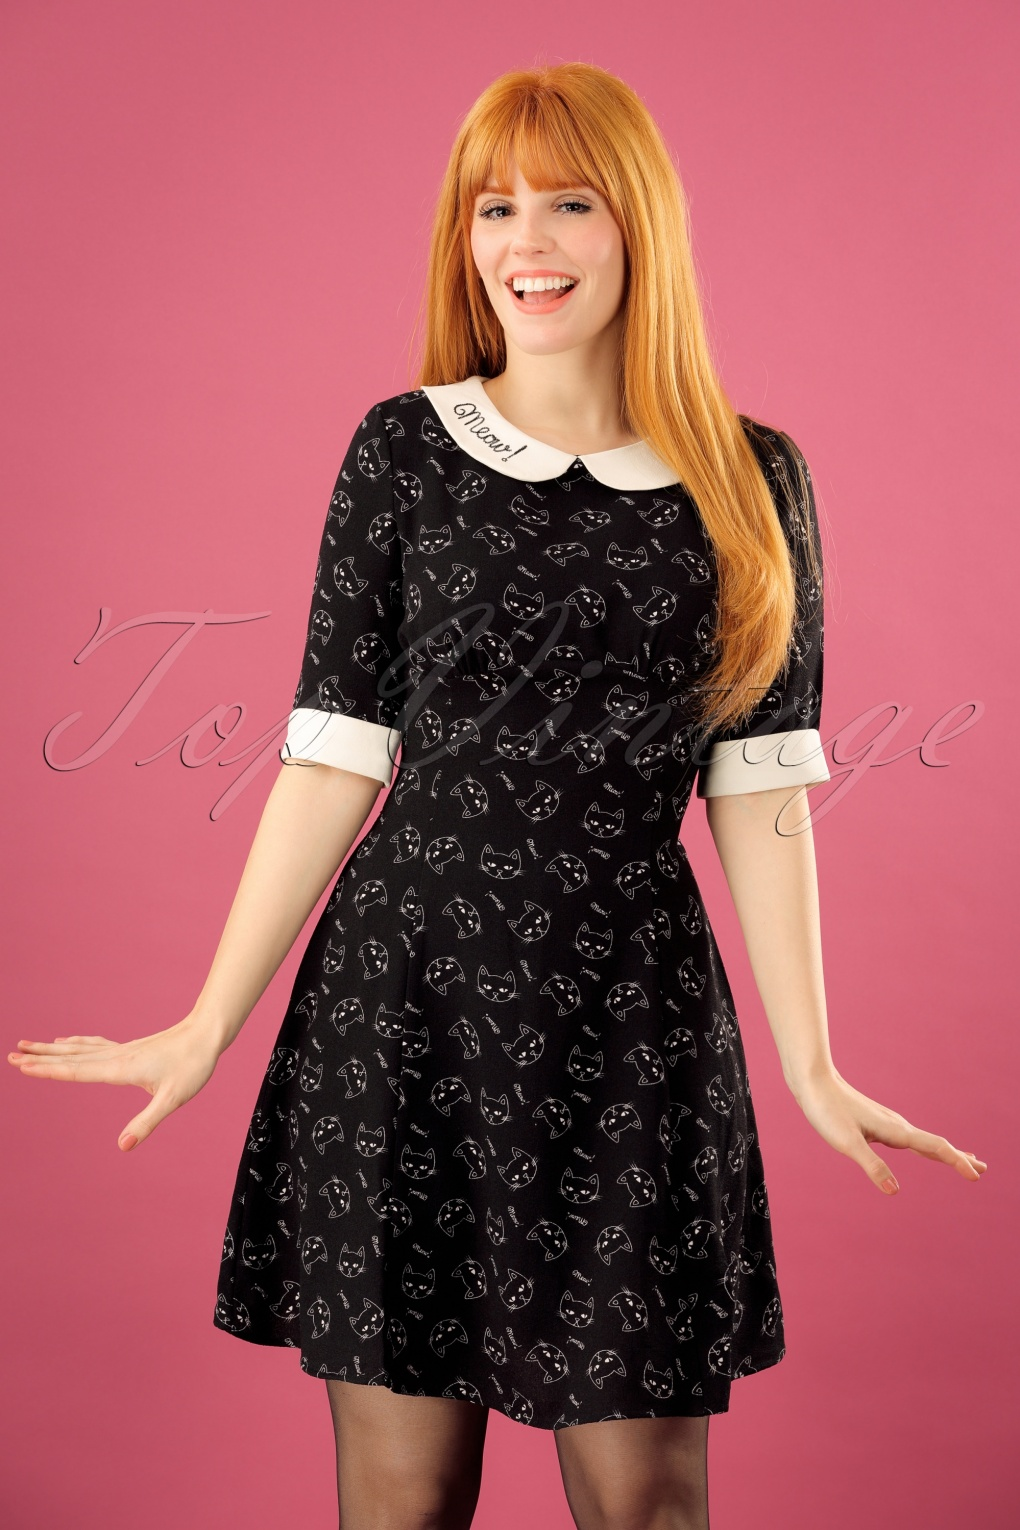 1960s Mad Men Dresses and Clothing Styles 60s Matou Mini Dress in Black £34.07 AT vintagedancer.com